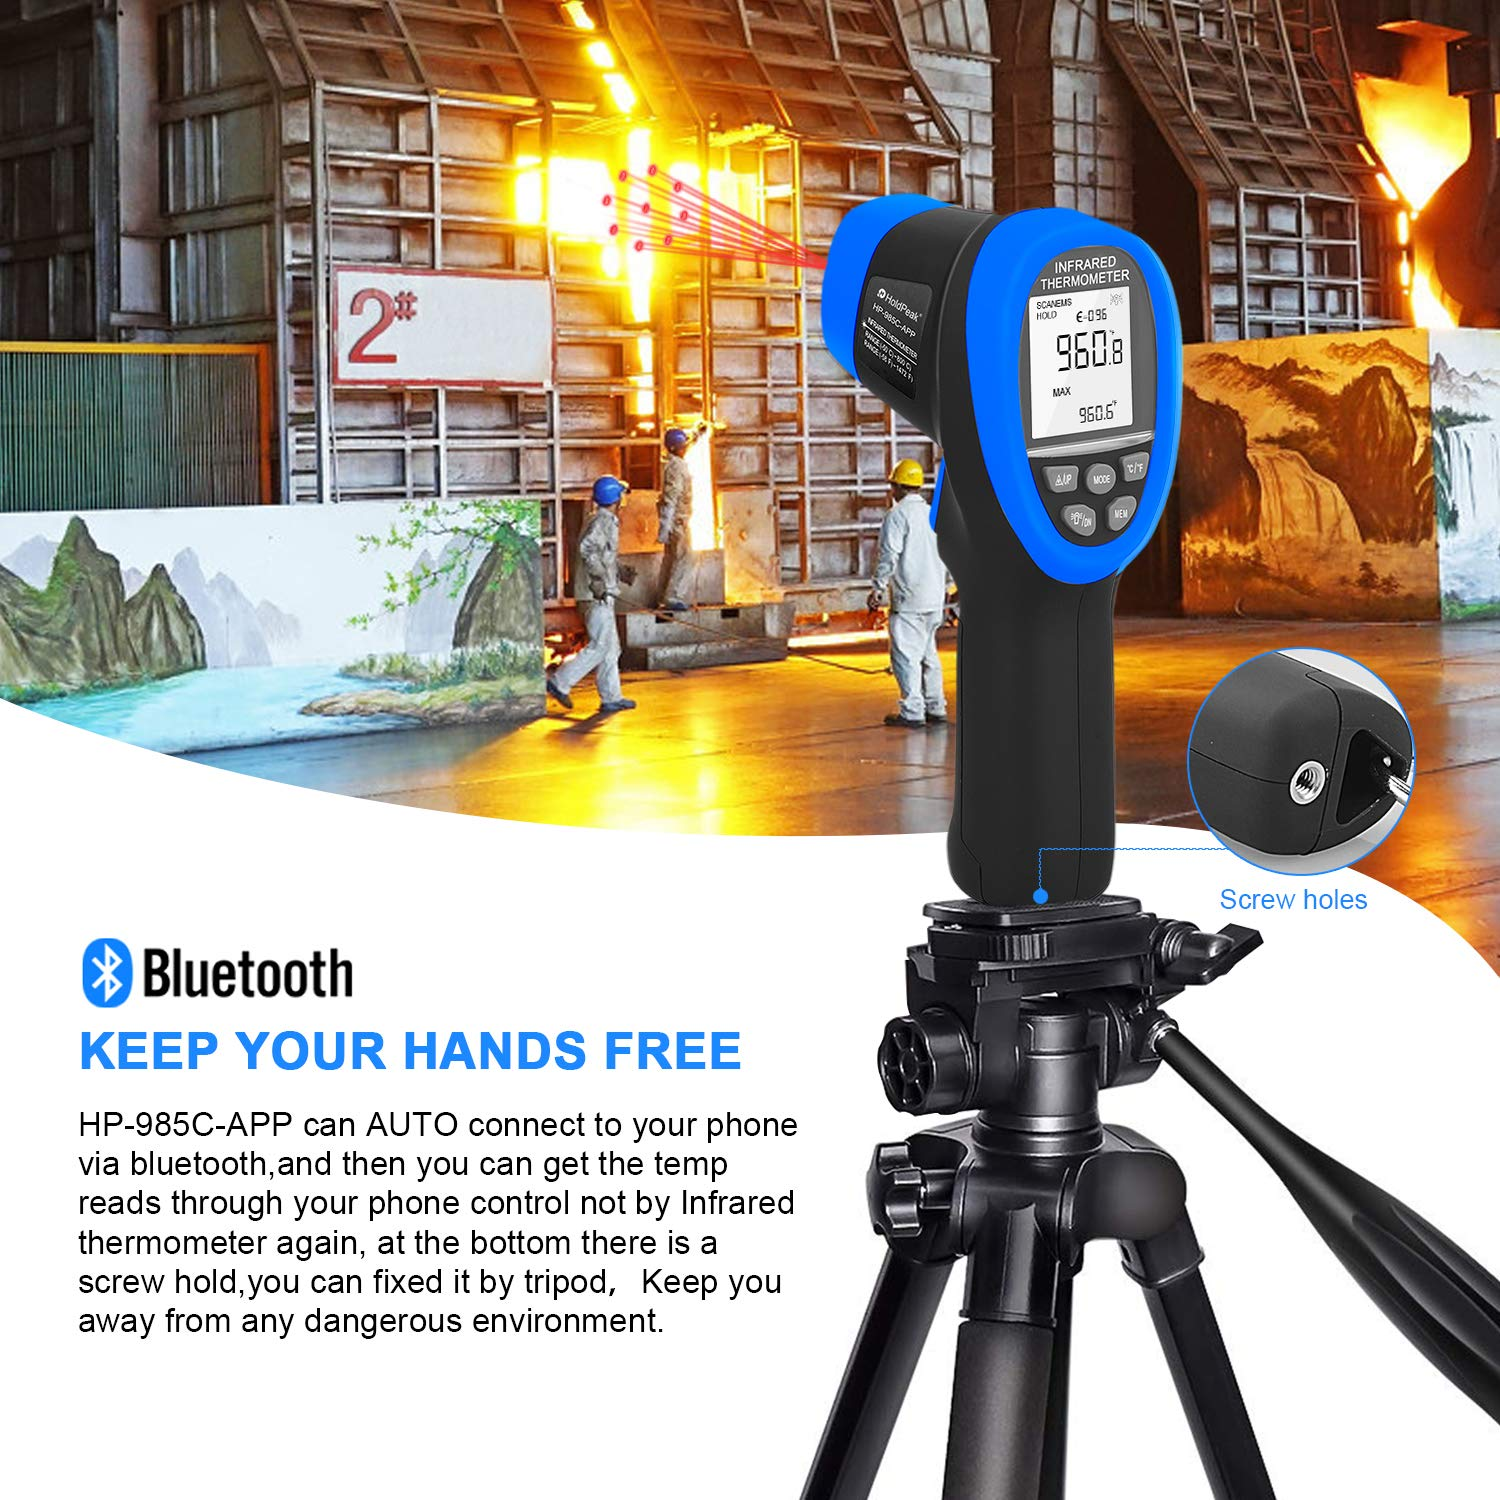 HOLDPEAK HP-985C-APP Infrared Thermometer Gun Connect to Your Phone via Bluetooth with APP,Non-Contact IR Temperature Gun -58 to1472℉(-50 to 800℃),DS 16:1 with Adjustable Emissivity for Forge Kiln by H HOLDPEAK (Image #6)